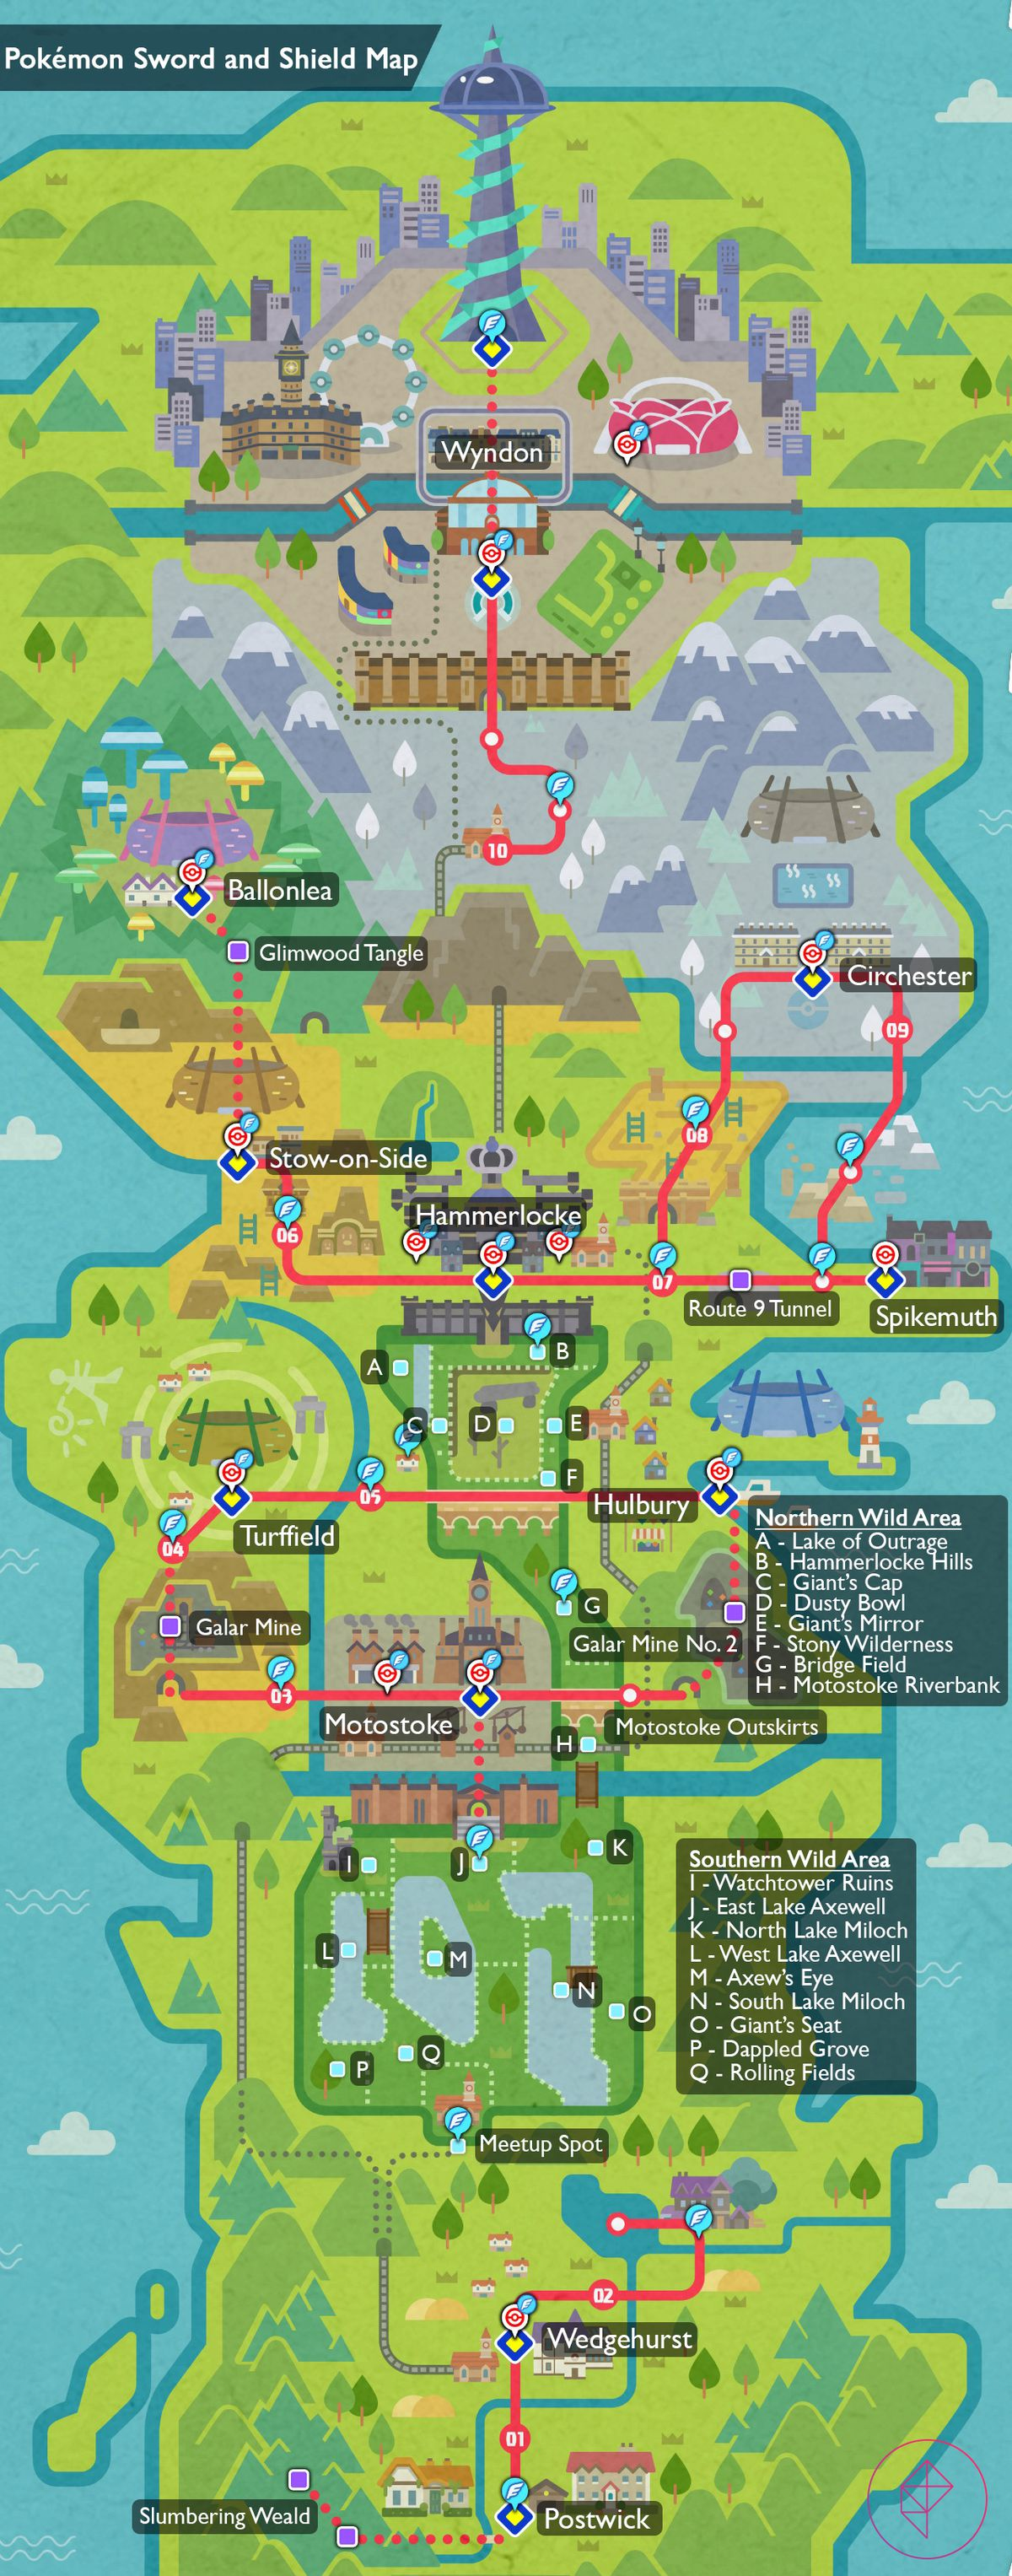 Pokémon Sword and Shield complete map and locations - Polygon